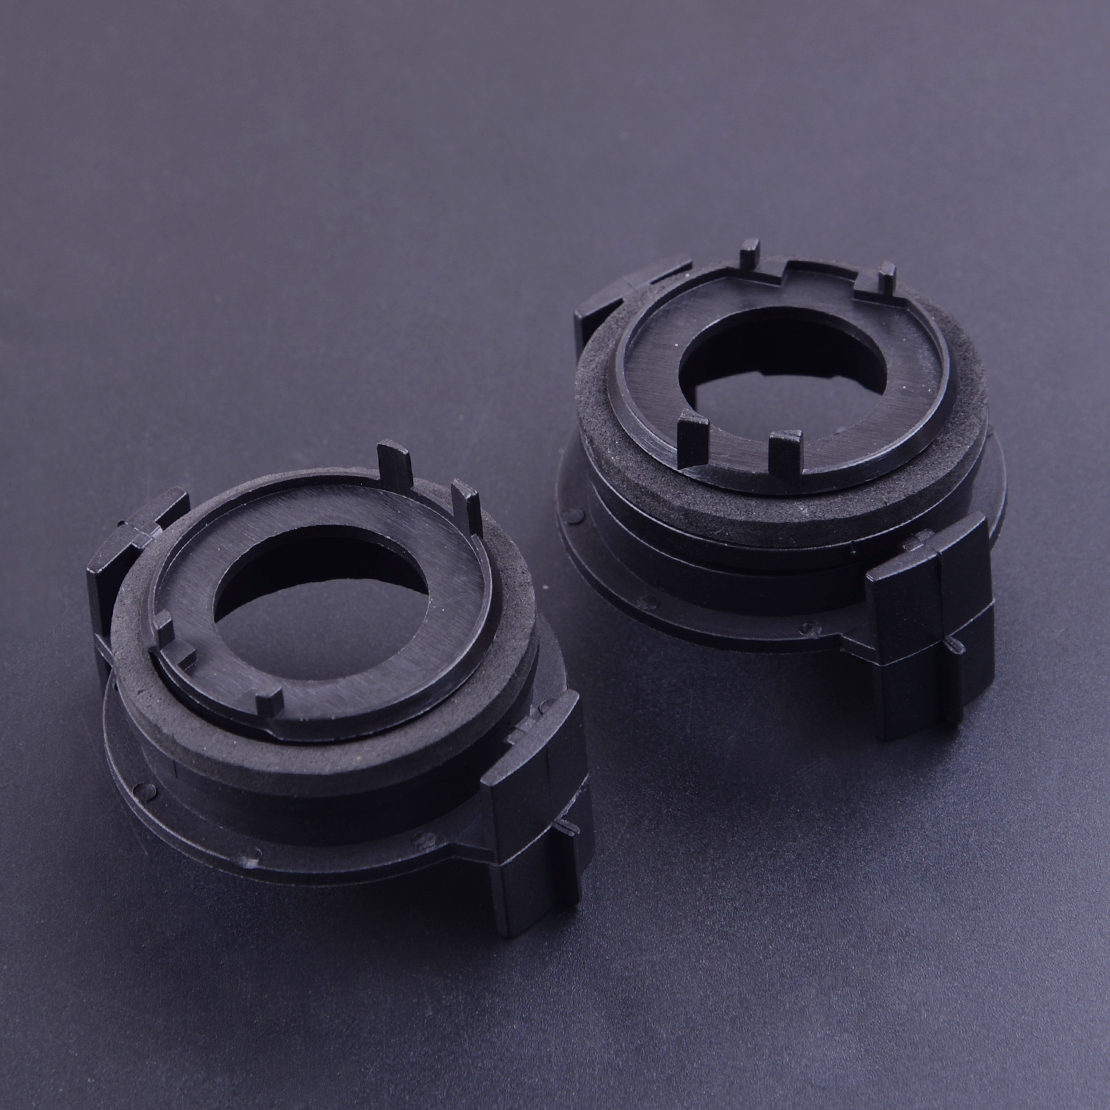 beler 2pcs Plastic Black <font><b>LED</b></font> Headlight Bulbs Lamp Light Clip <font><b>Adapter</b></font> Socket Base Holder Retainer Fit For <font><b>BMW</b></font> <font><b>E46</b></font> E90 3 Series image